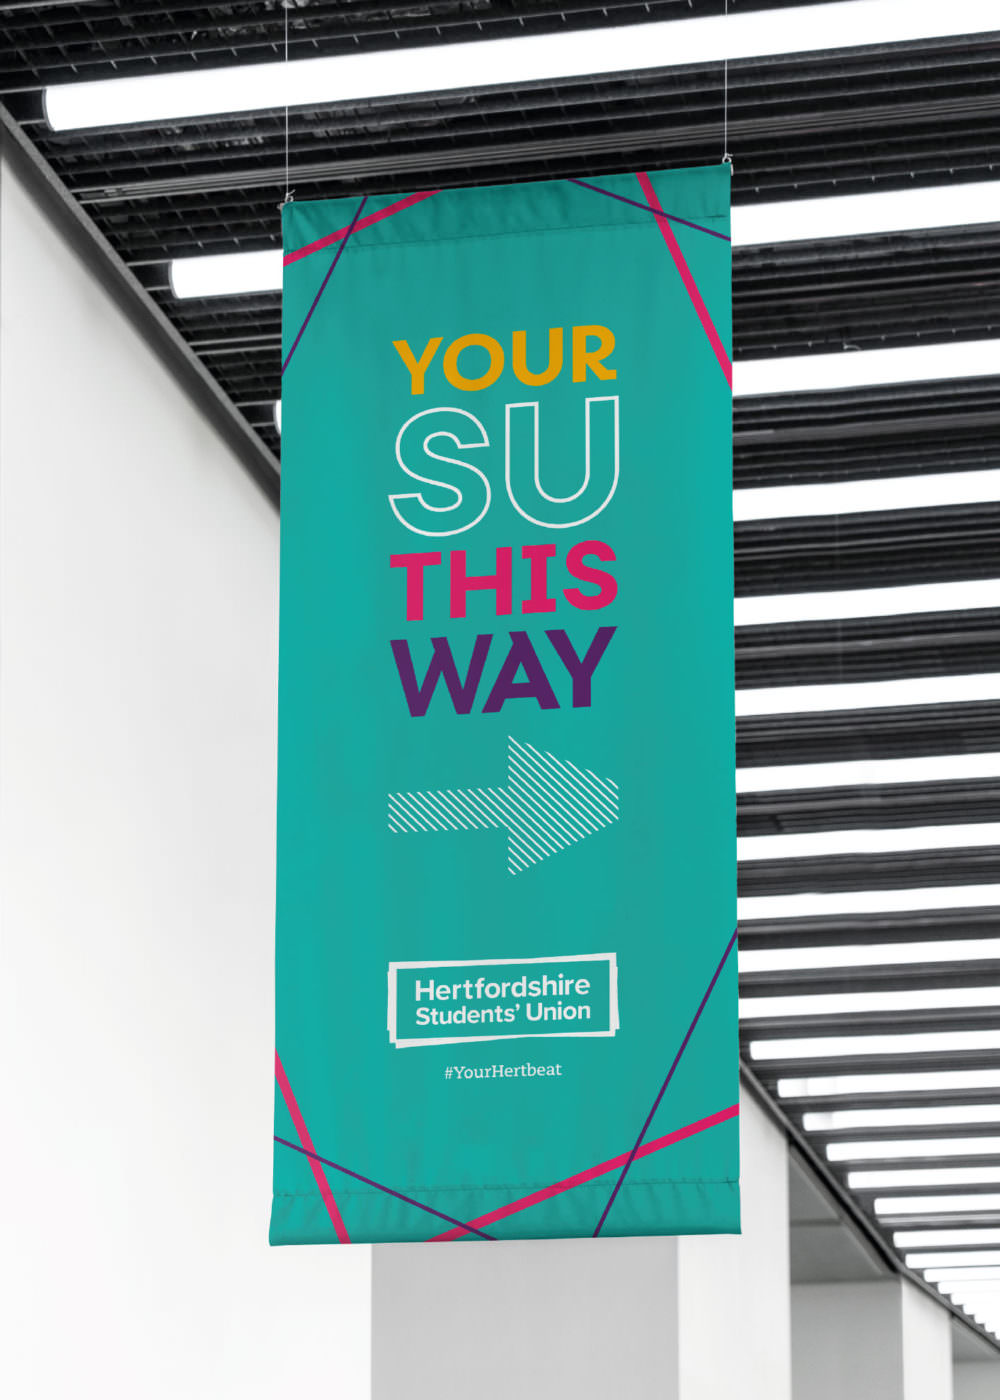 Hertfordshire Students' Union - Branding, Design, Signage & Graphics